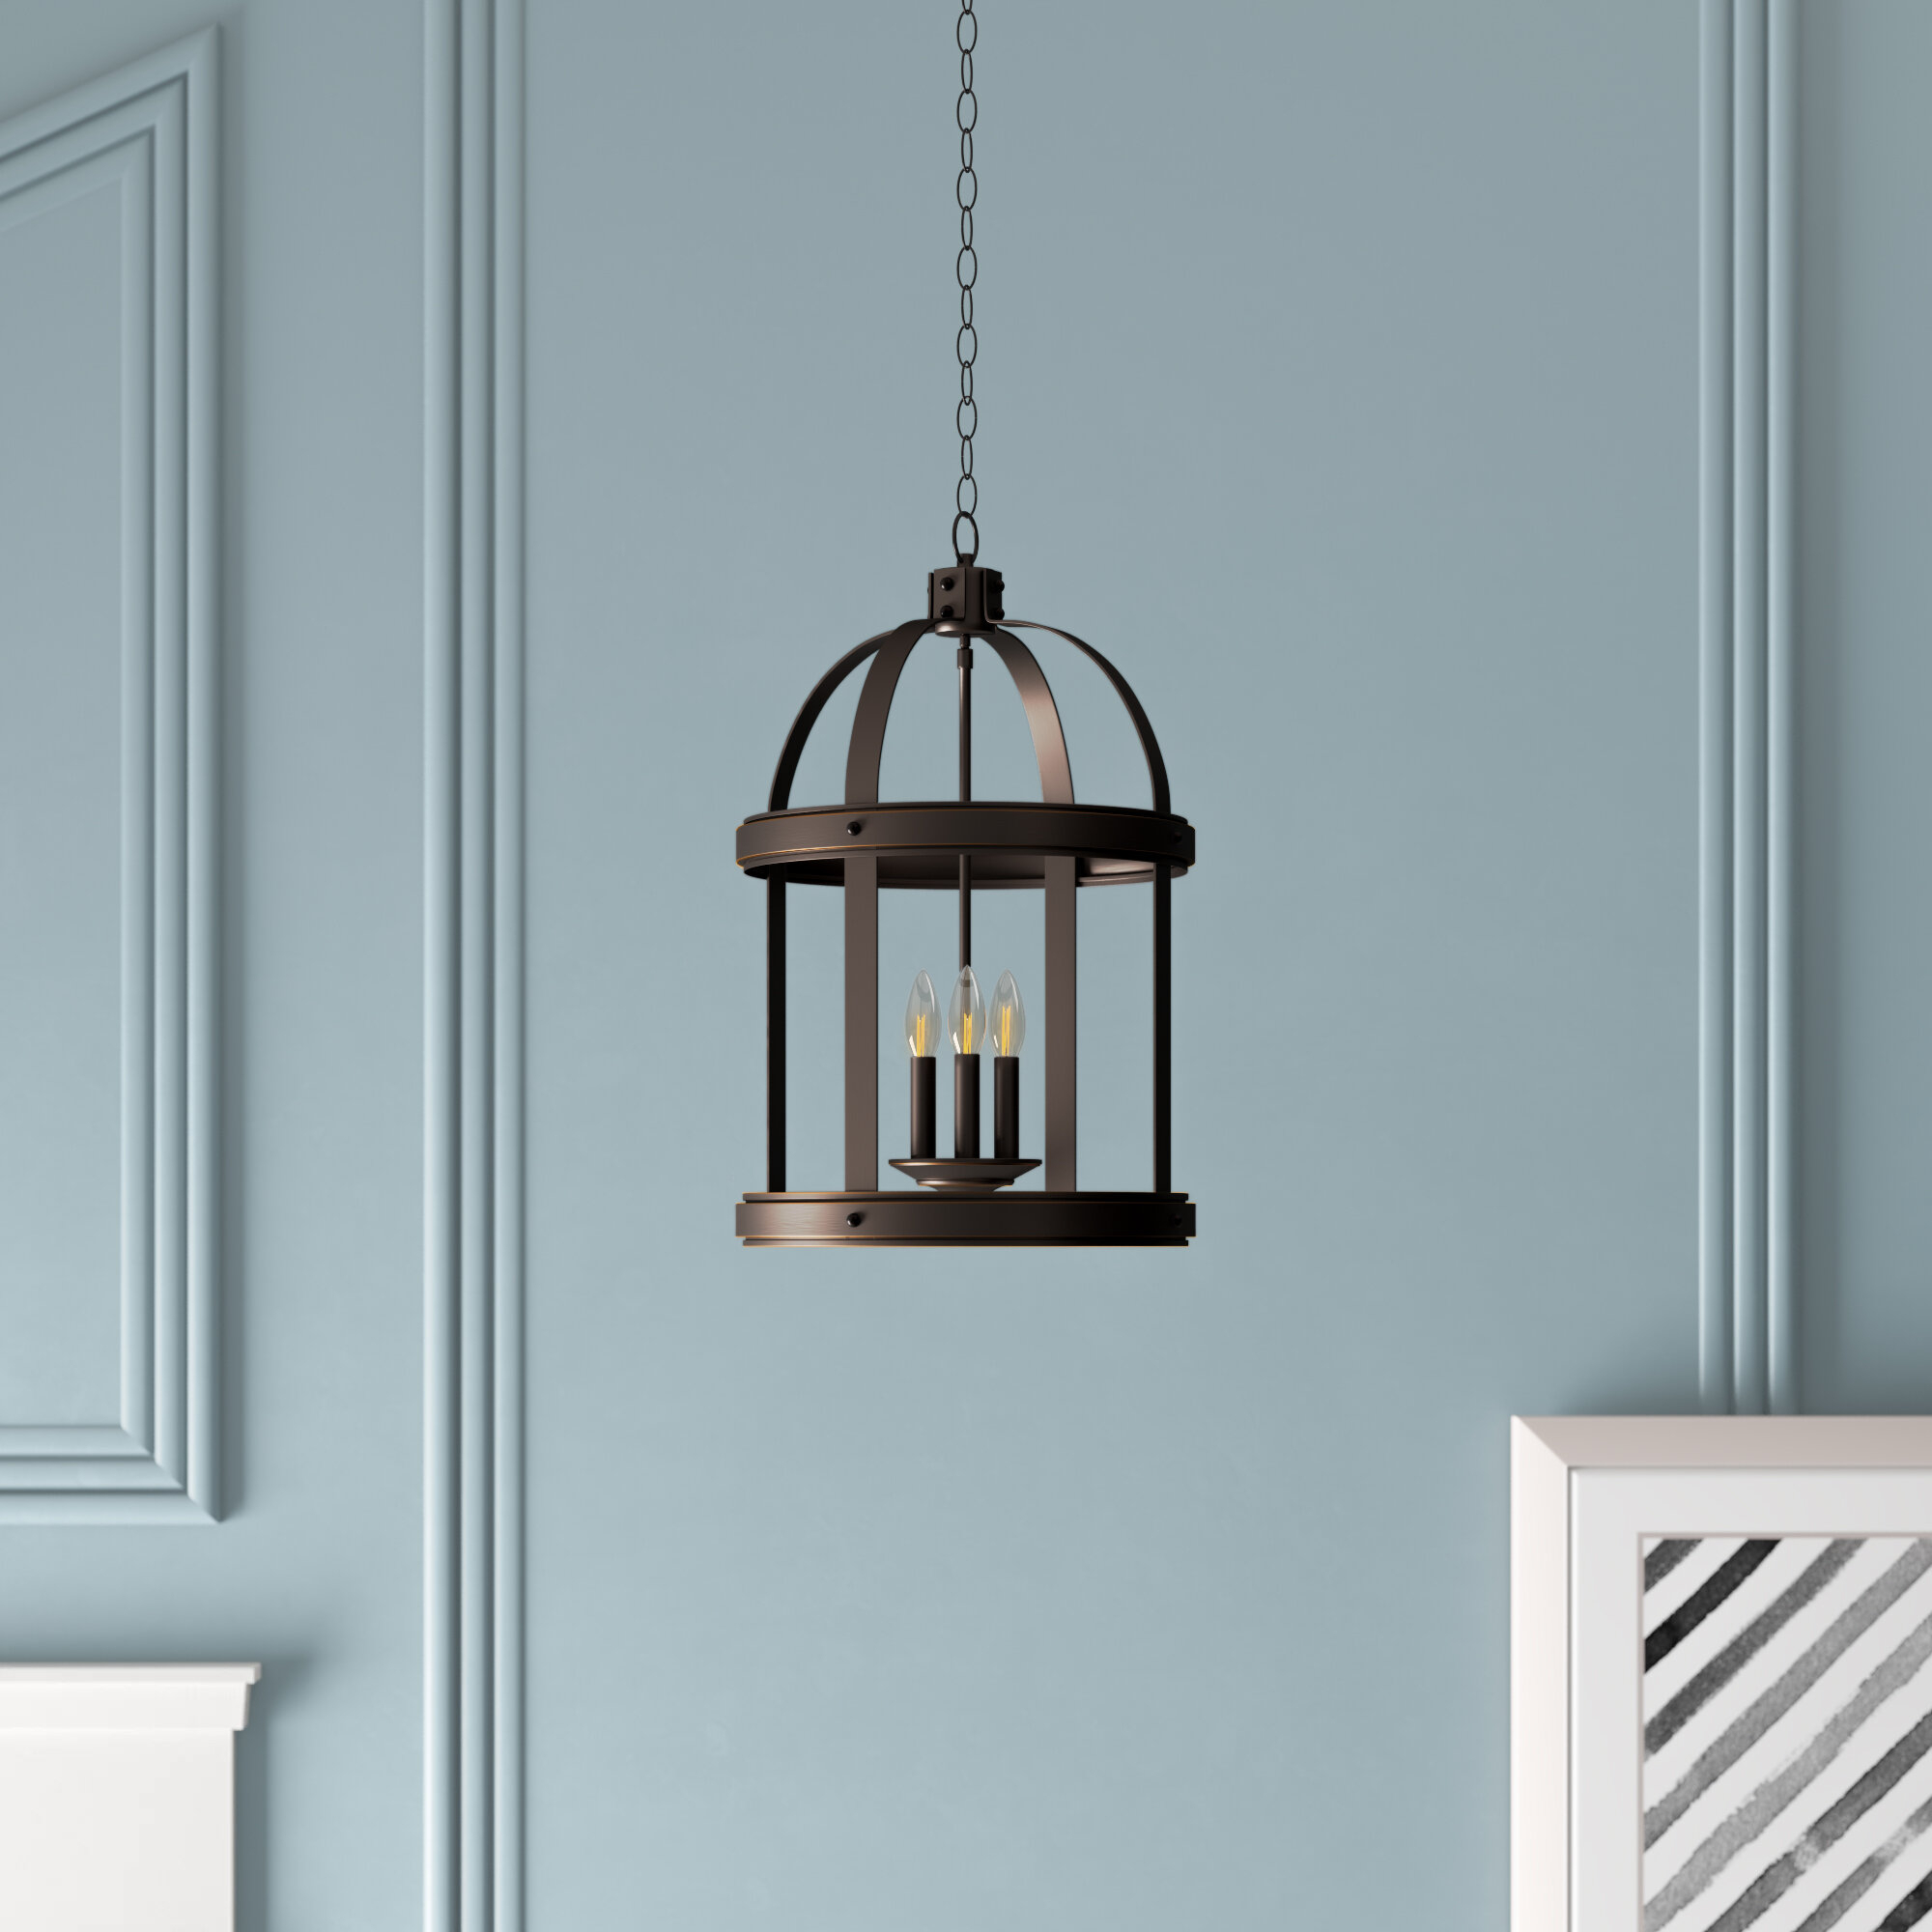 Featured Photo of Chauvin 3 Light Lantern Geometric Pendants